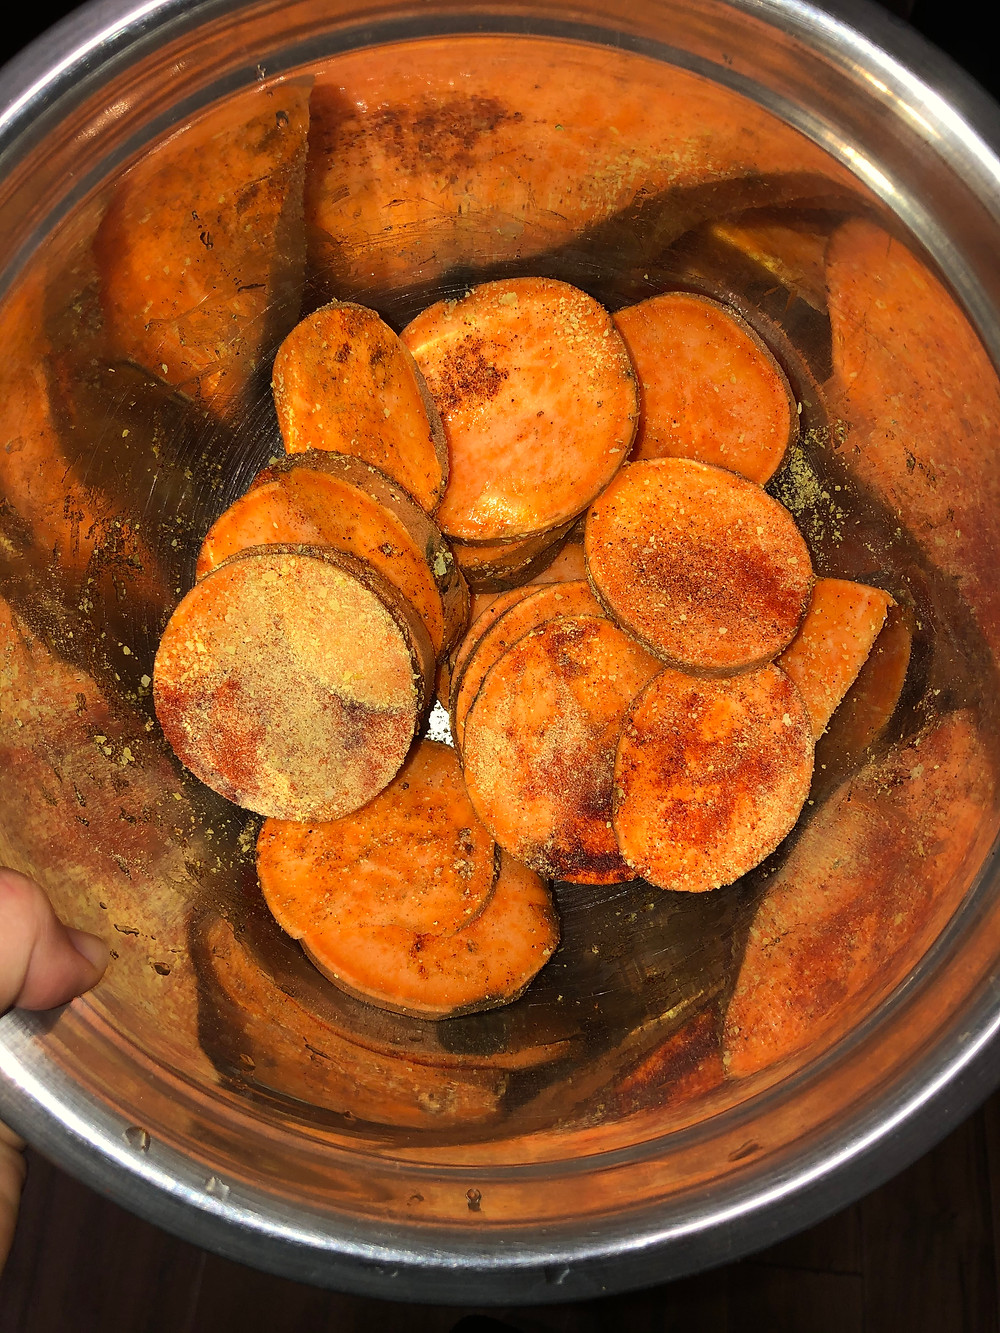 chopped up sweet potatoes